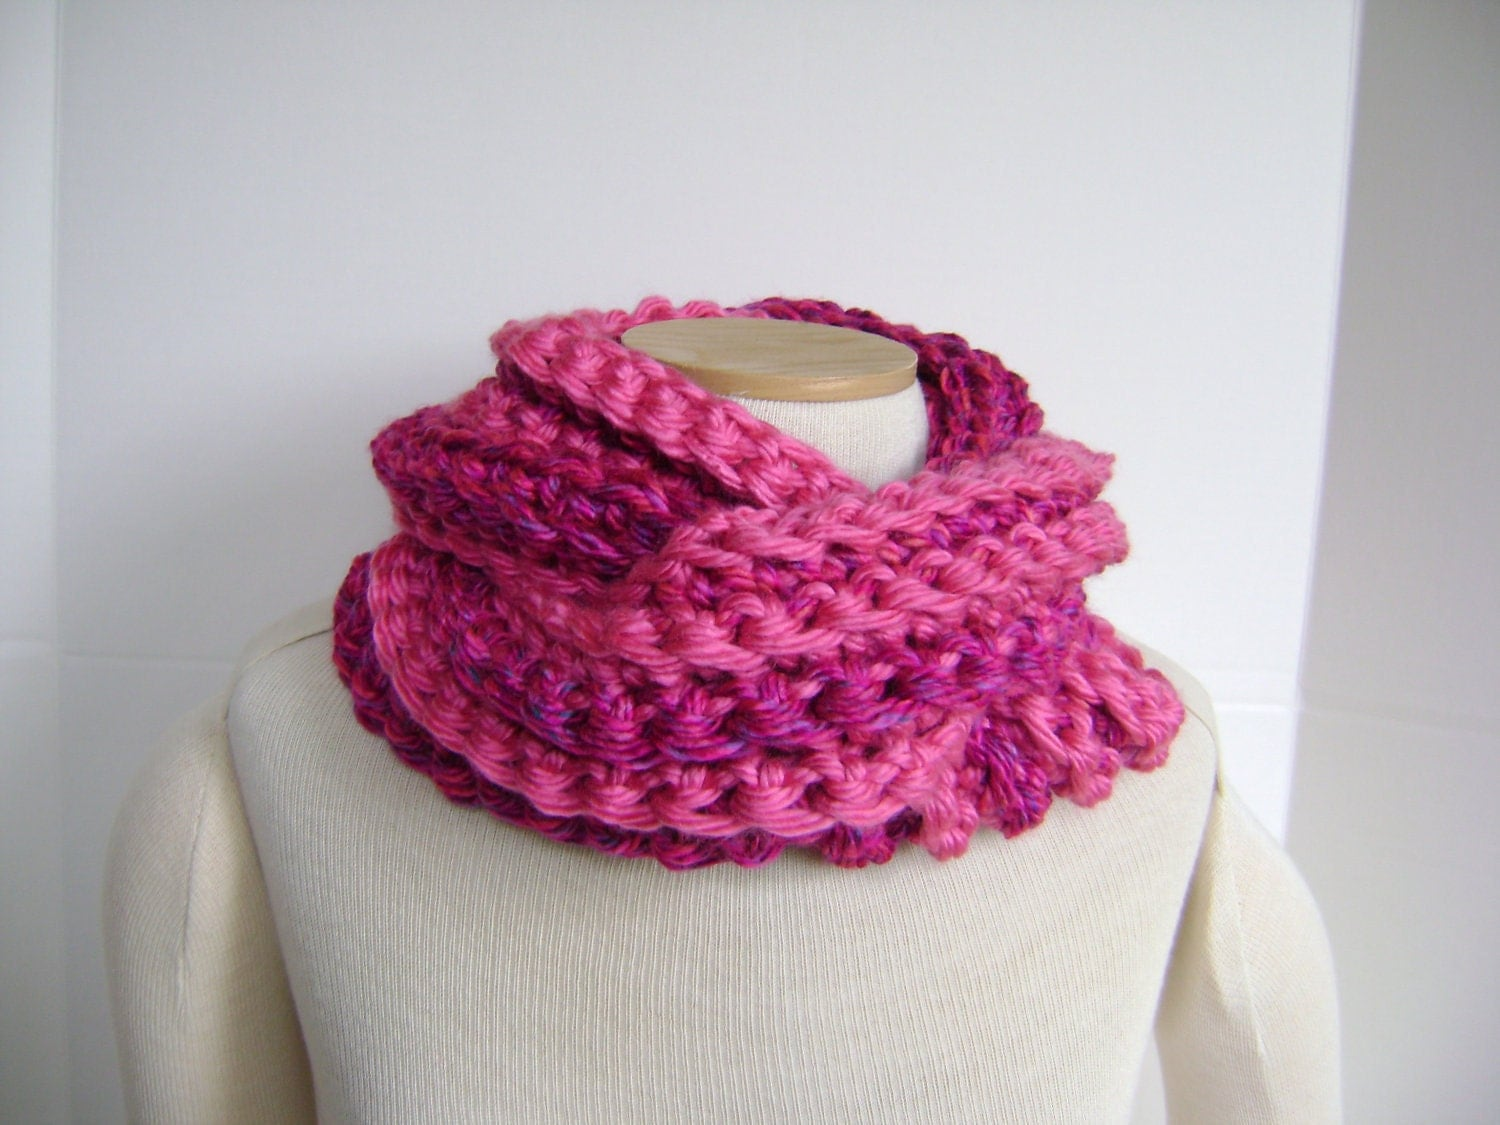 Crochet Cowl Scarf  ON SALE 28 reg 41 Mobius Style  For Woman or  Crochet Scarves For Sale